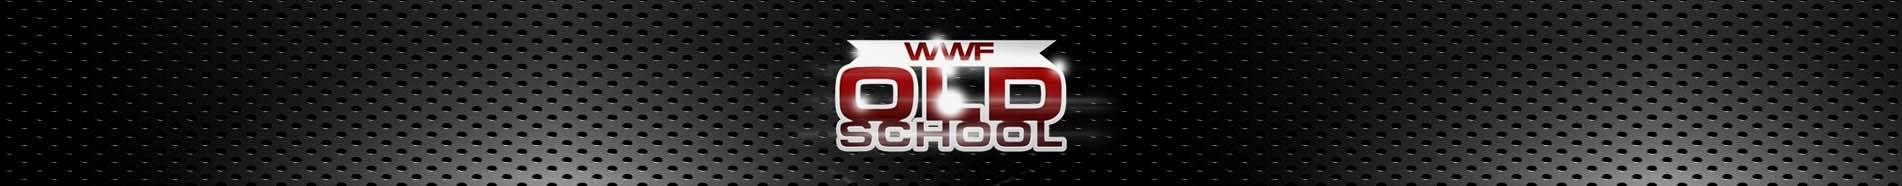 WWF Old School